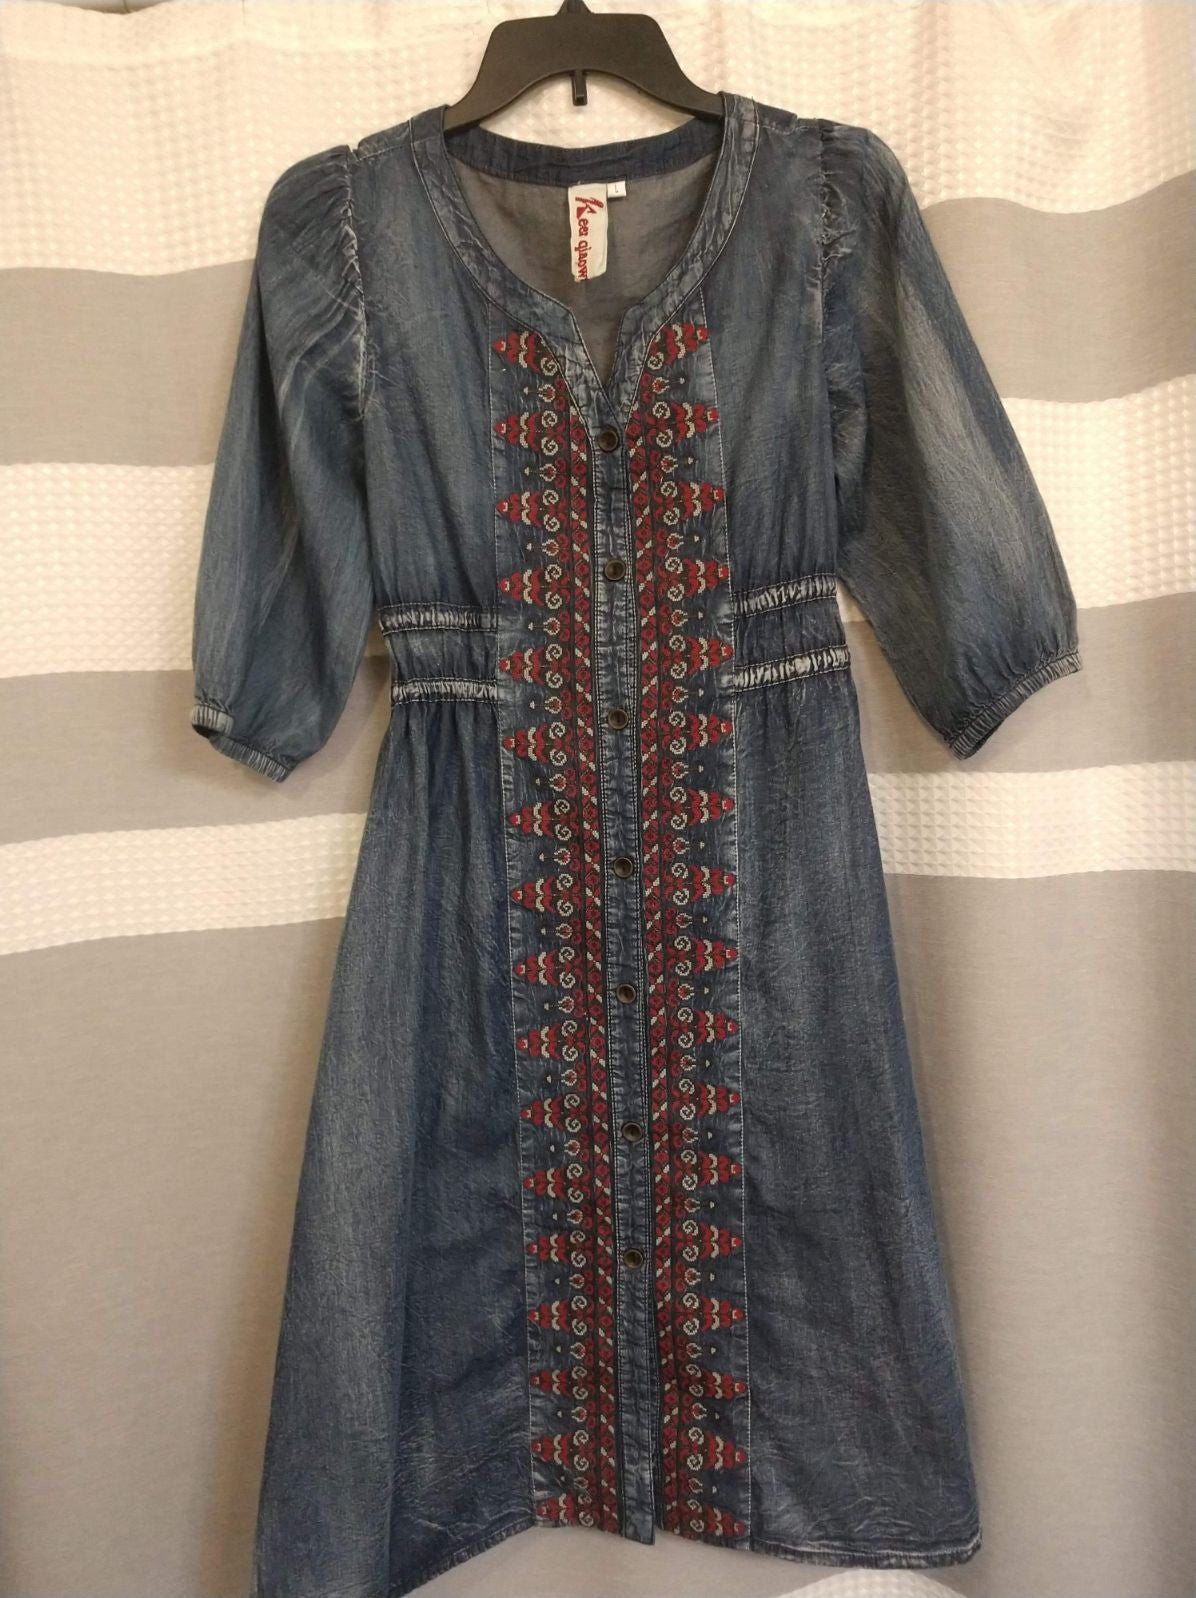 Keer Qiaowa Boho Midi Denim Dress Large